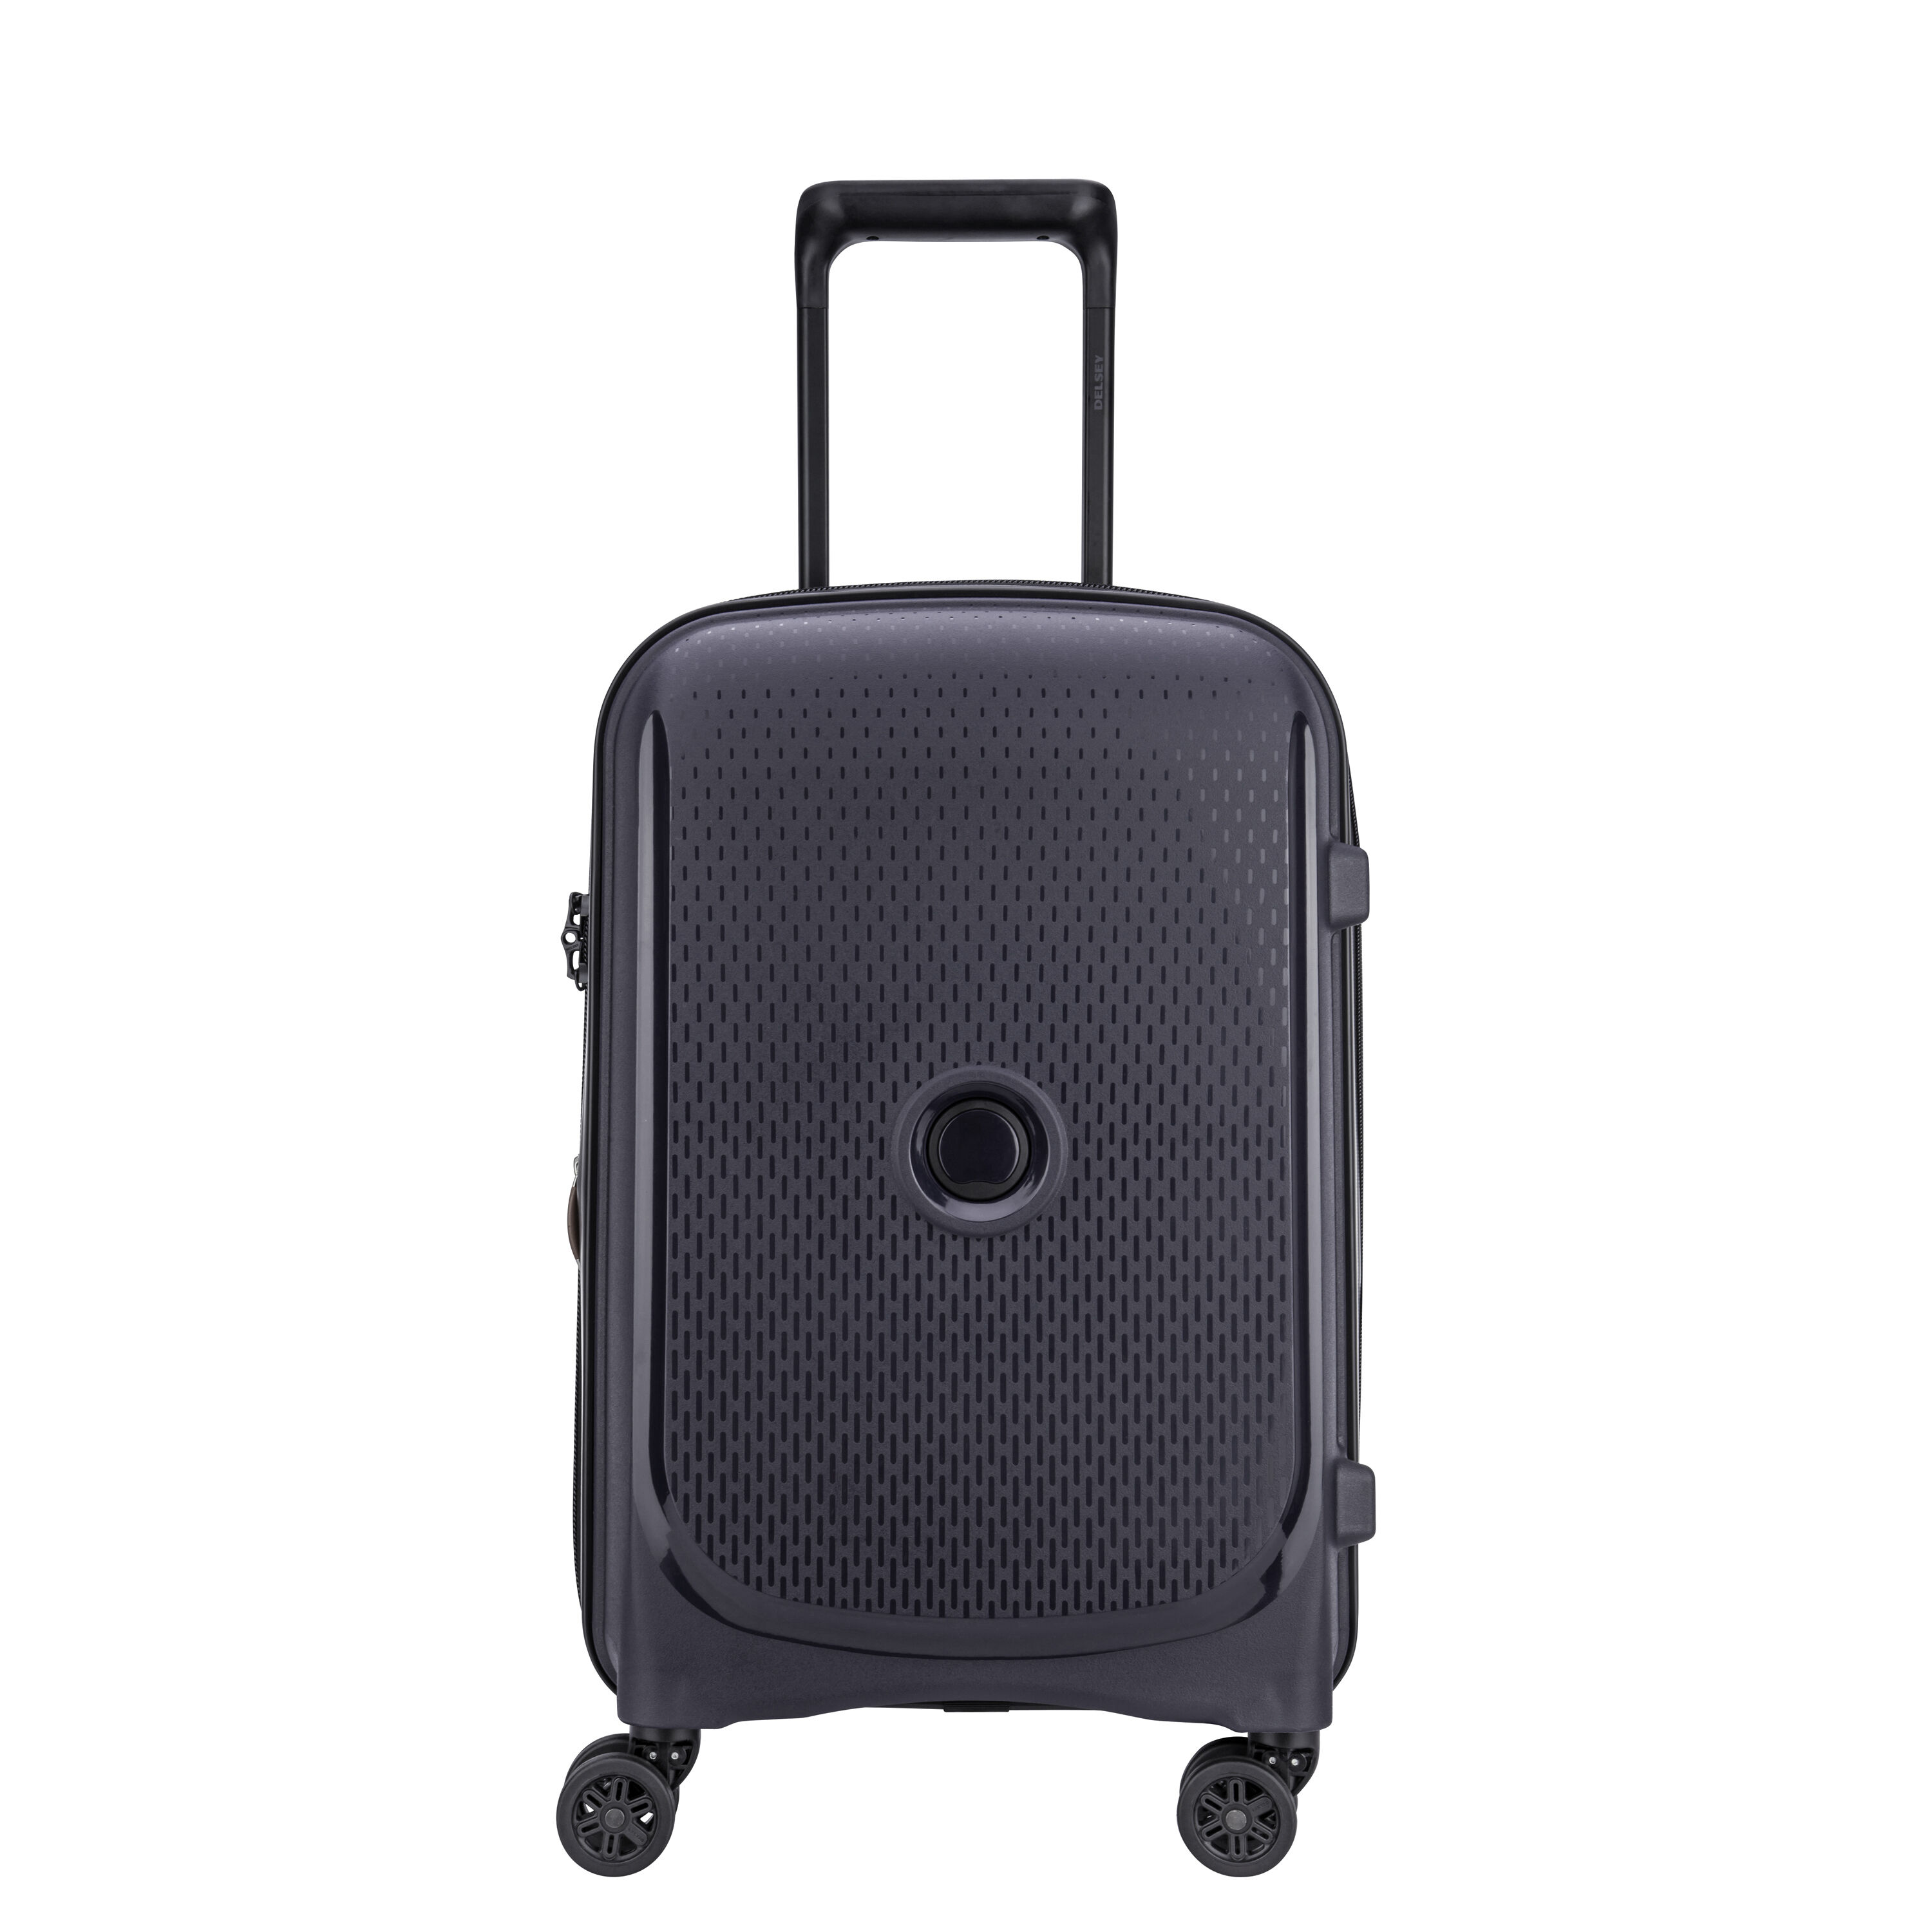 Delsey Valise cabine Belmont Plus Valise Trolley C 4R 55 hhKNDH5yJ